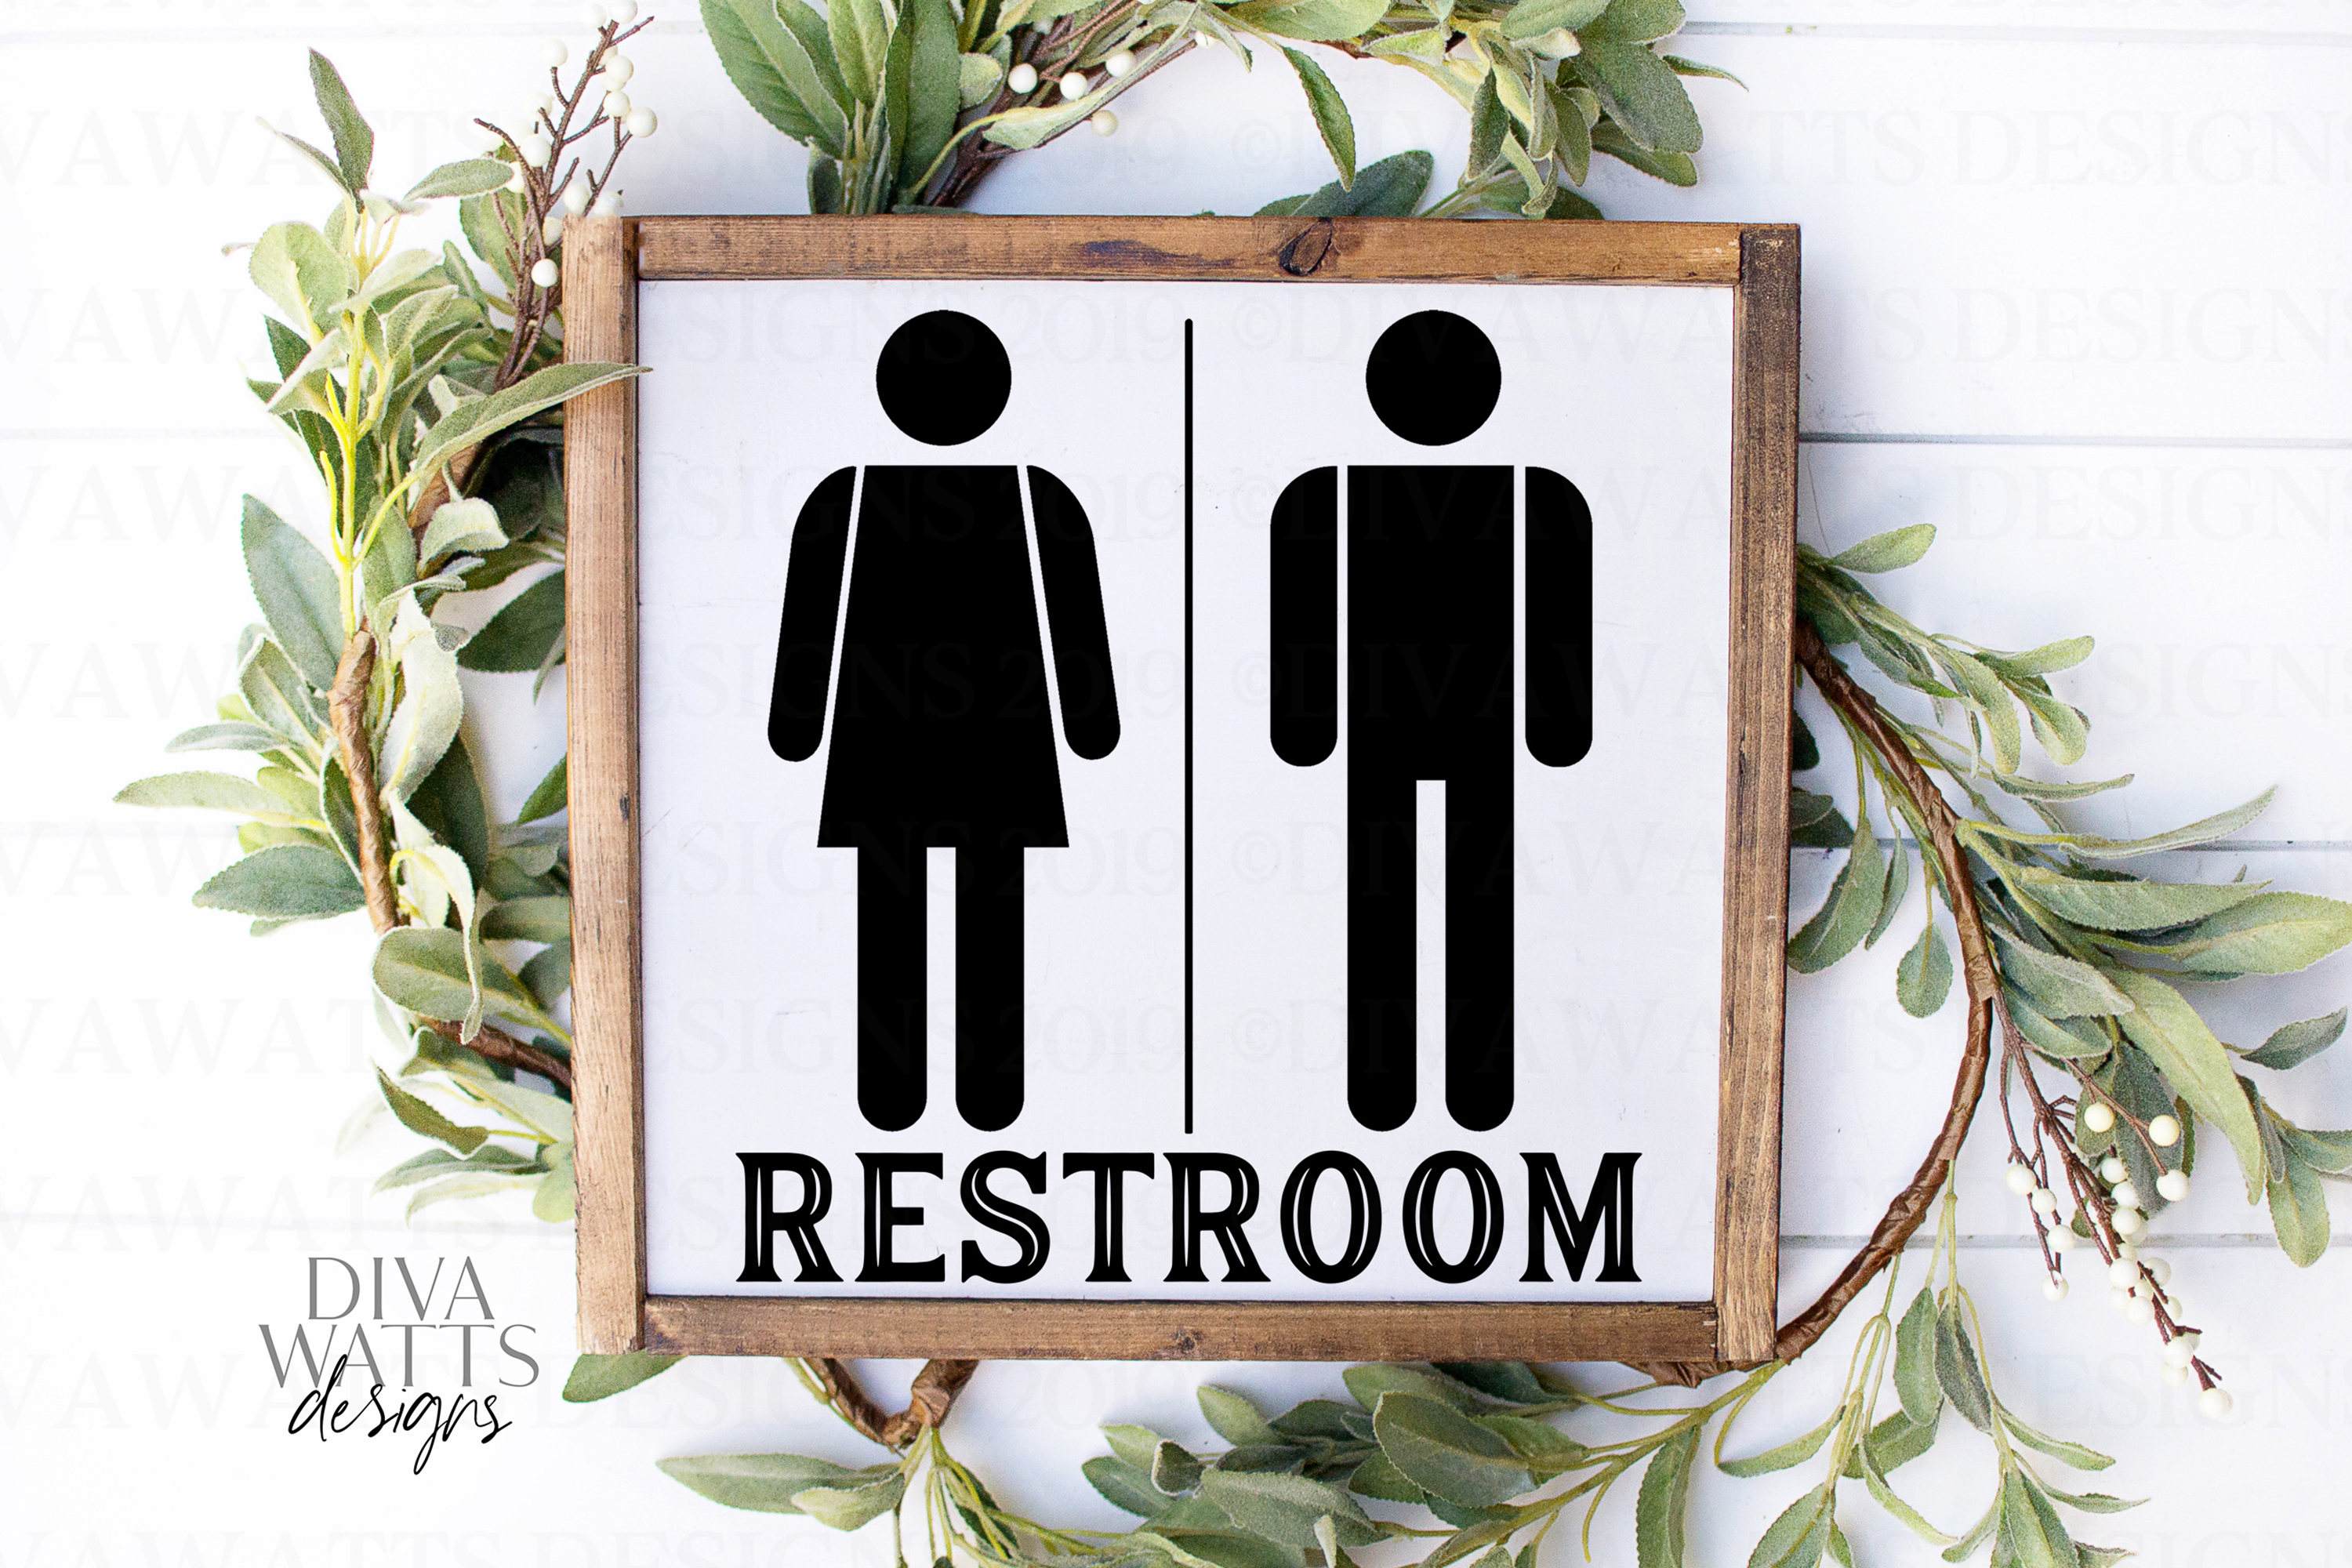 Restroom With Woman Man Figures People - Farmhouse Sign SVG example image 1